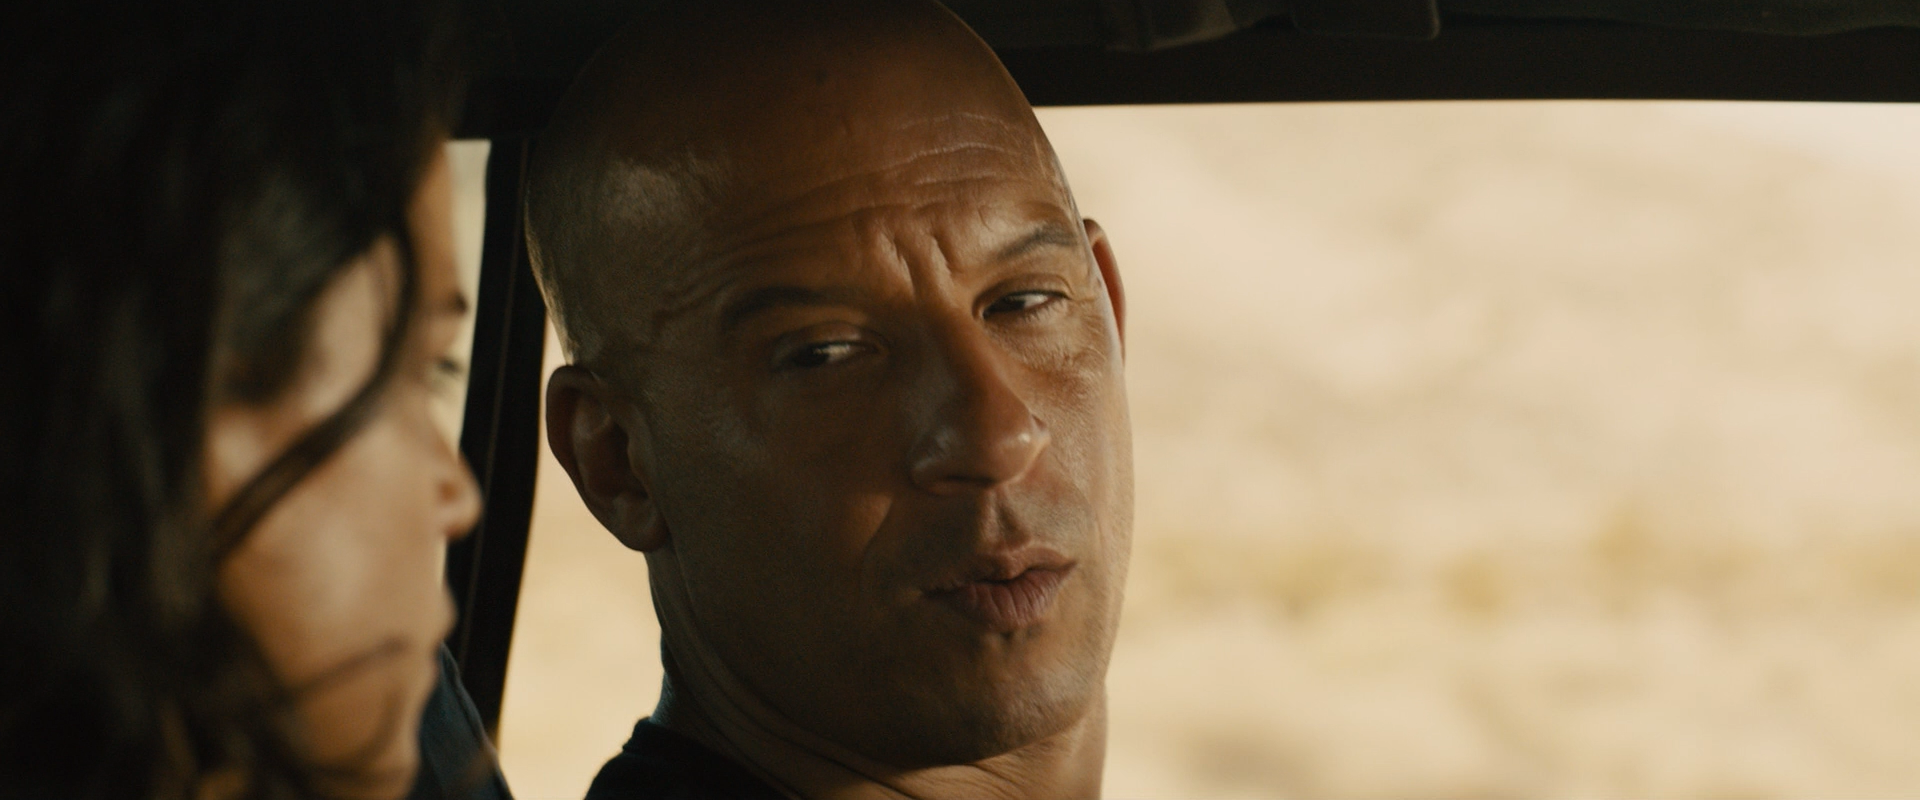 Furious 7 / Форсаж 7 [Extended Cut] [2015 / BDRip 1080p] [Action / Crime / Thriller]